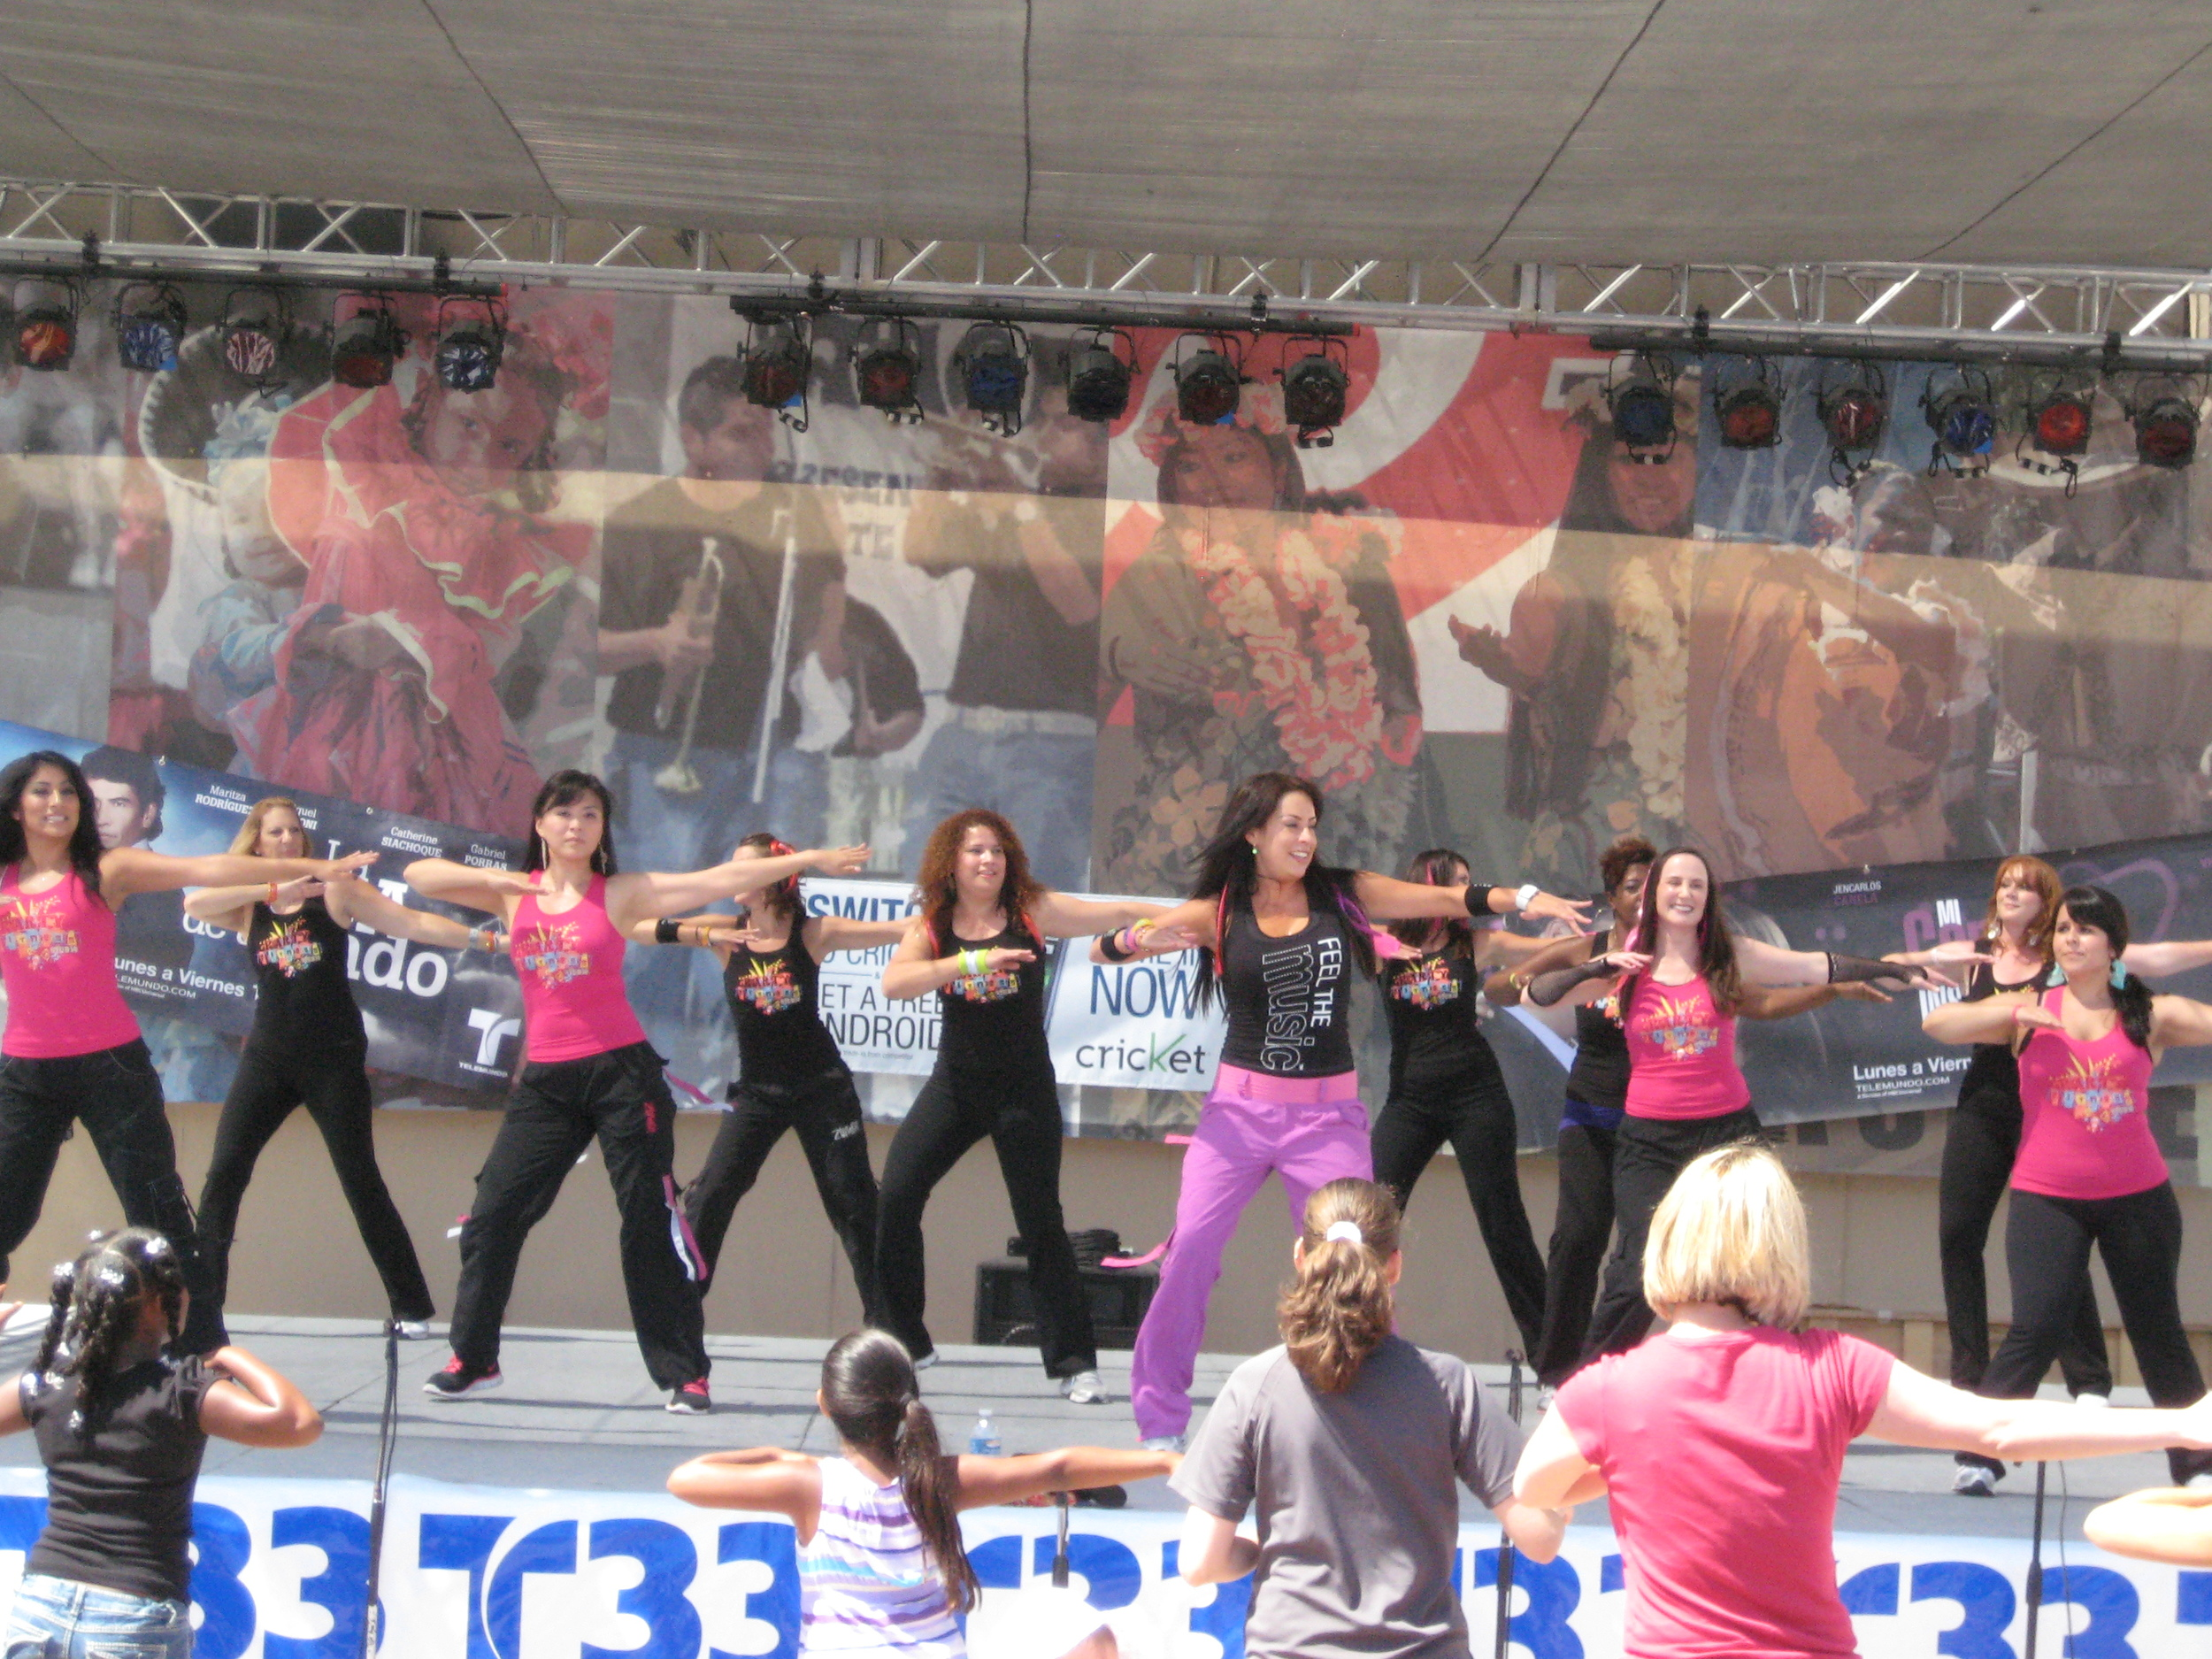 Party Fitness Performing at Del Mar Fair 2010